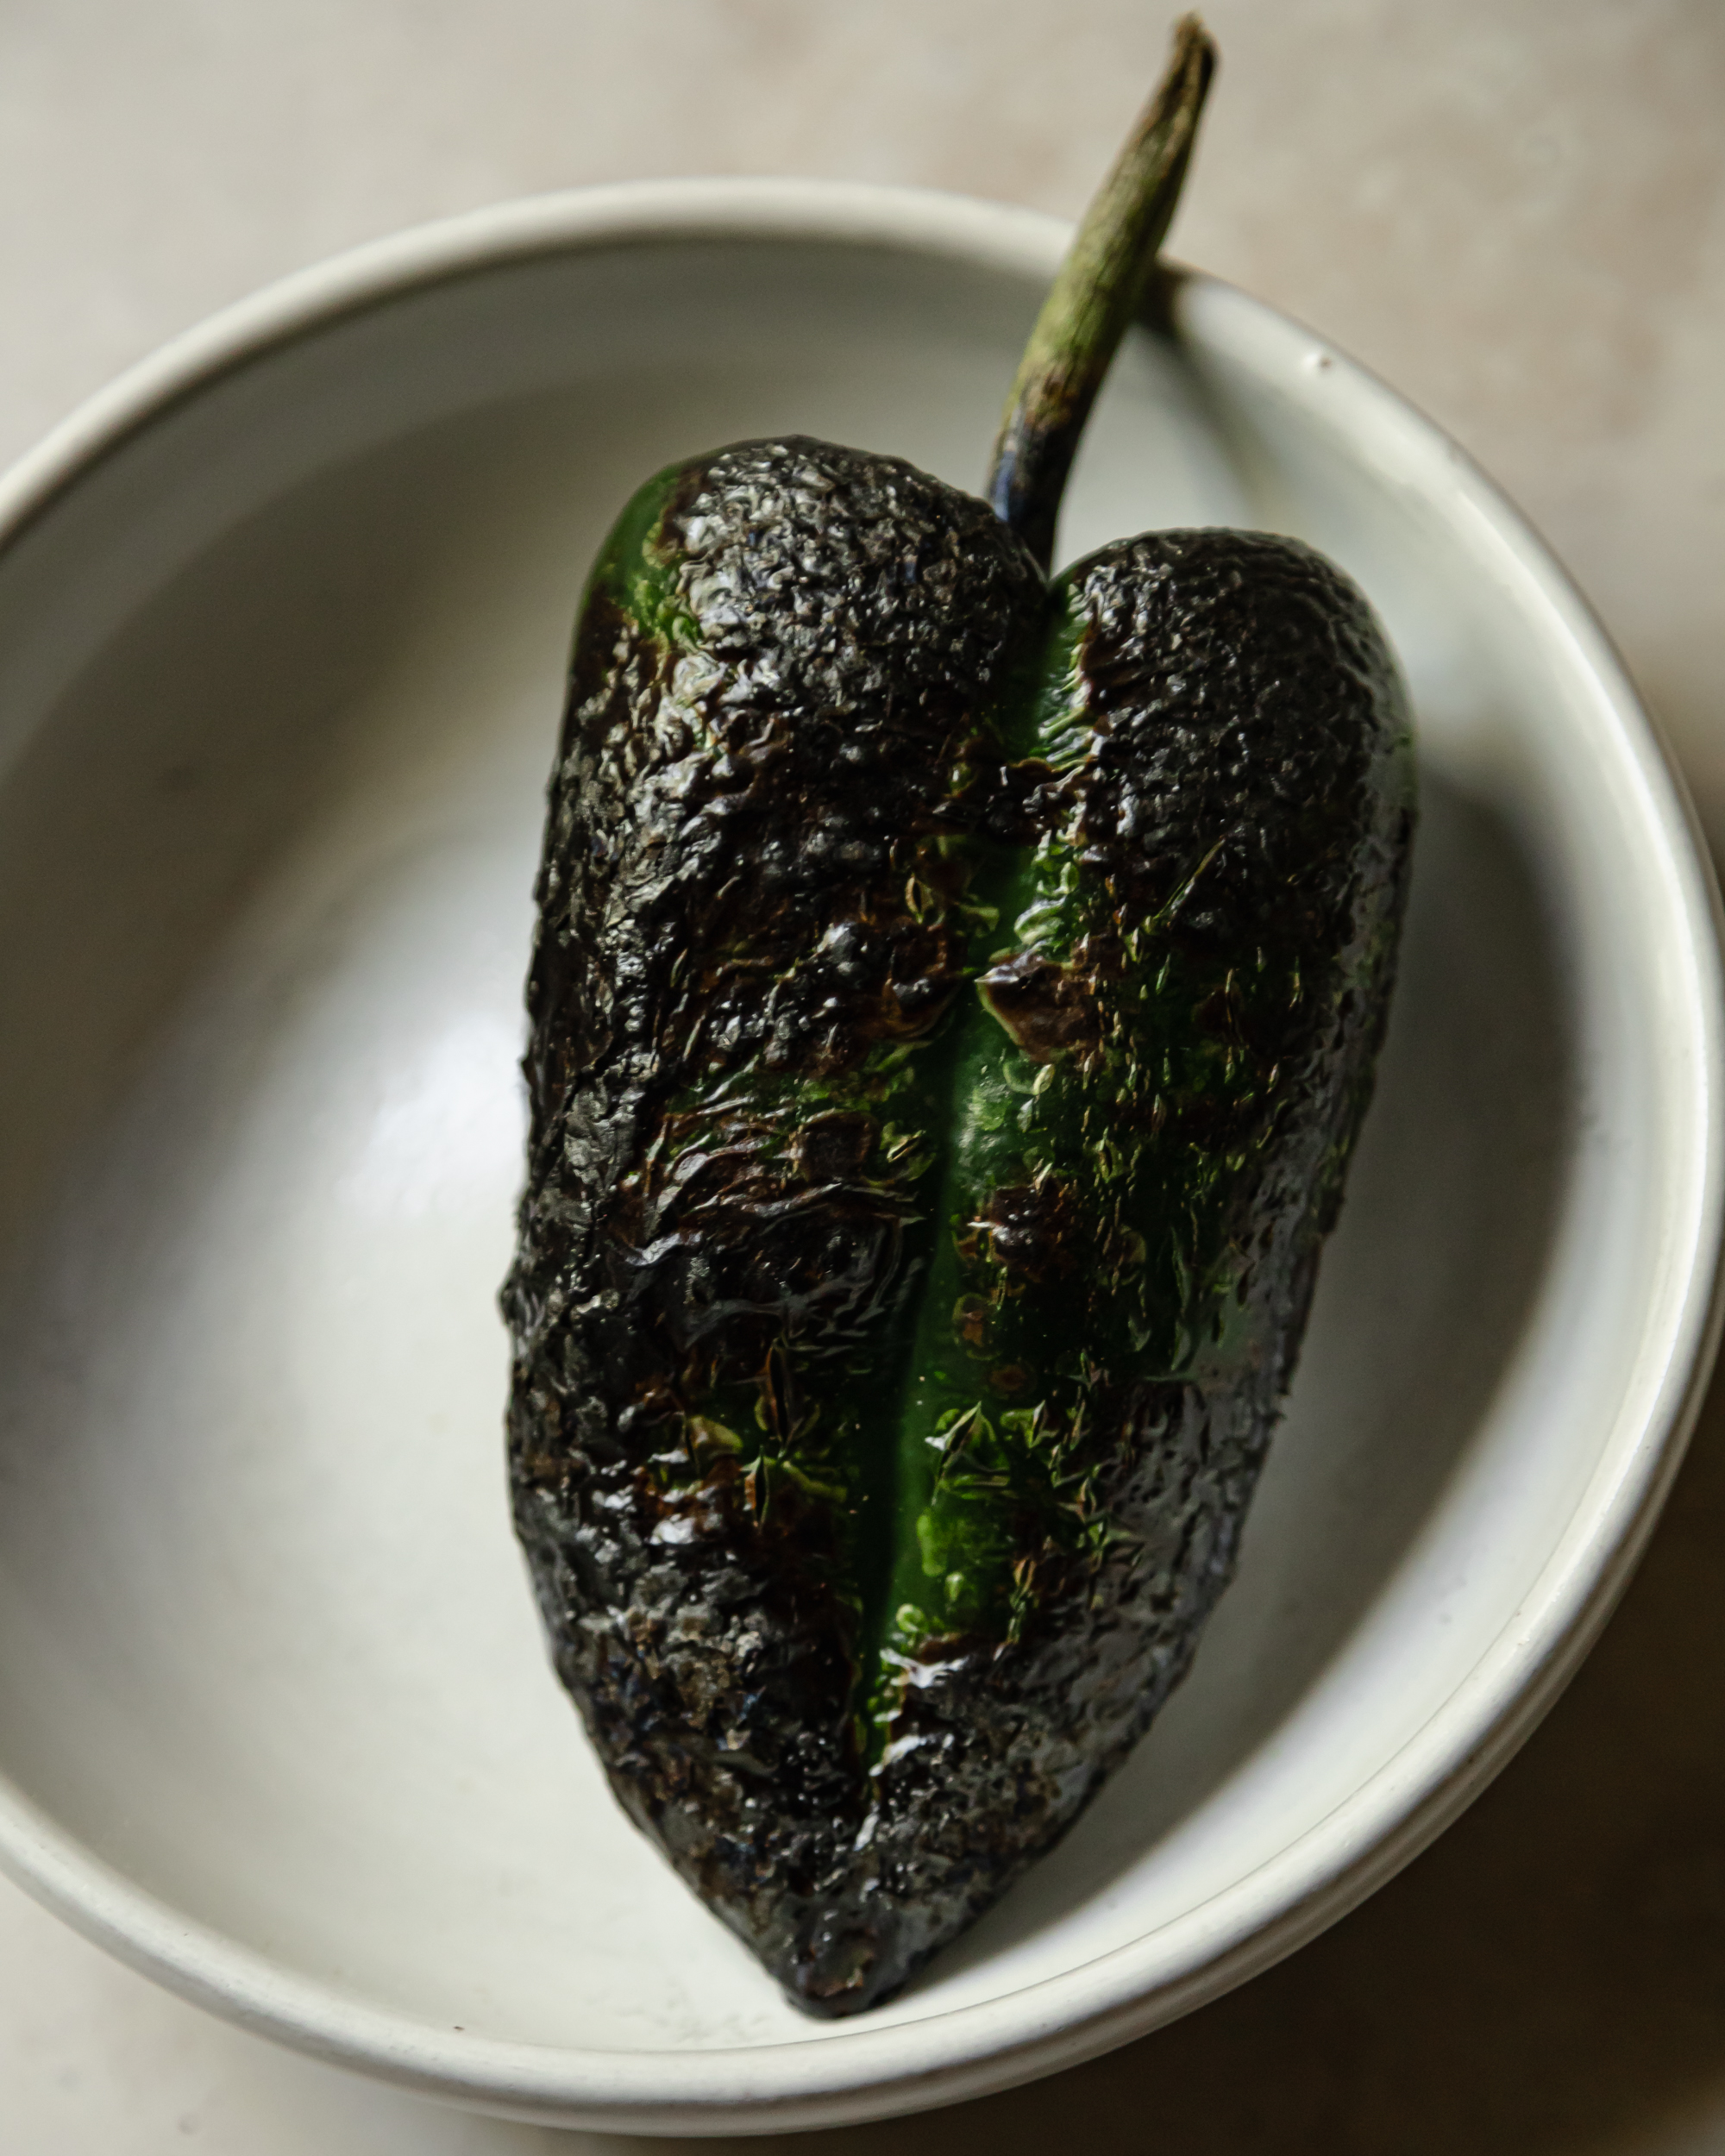 An up close shot of a charred poblano pepper in a white bowl.